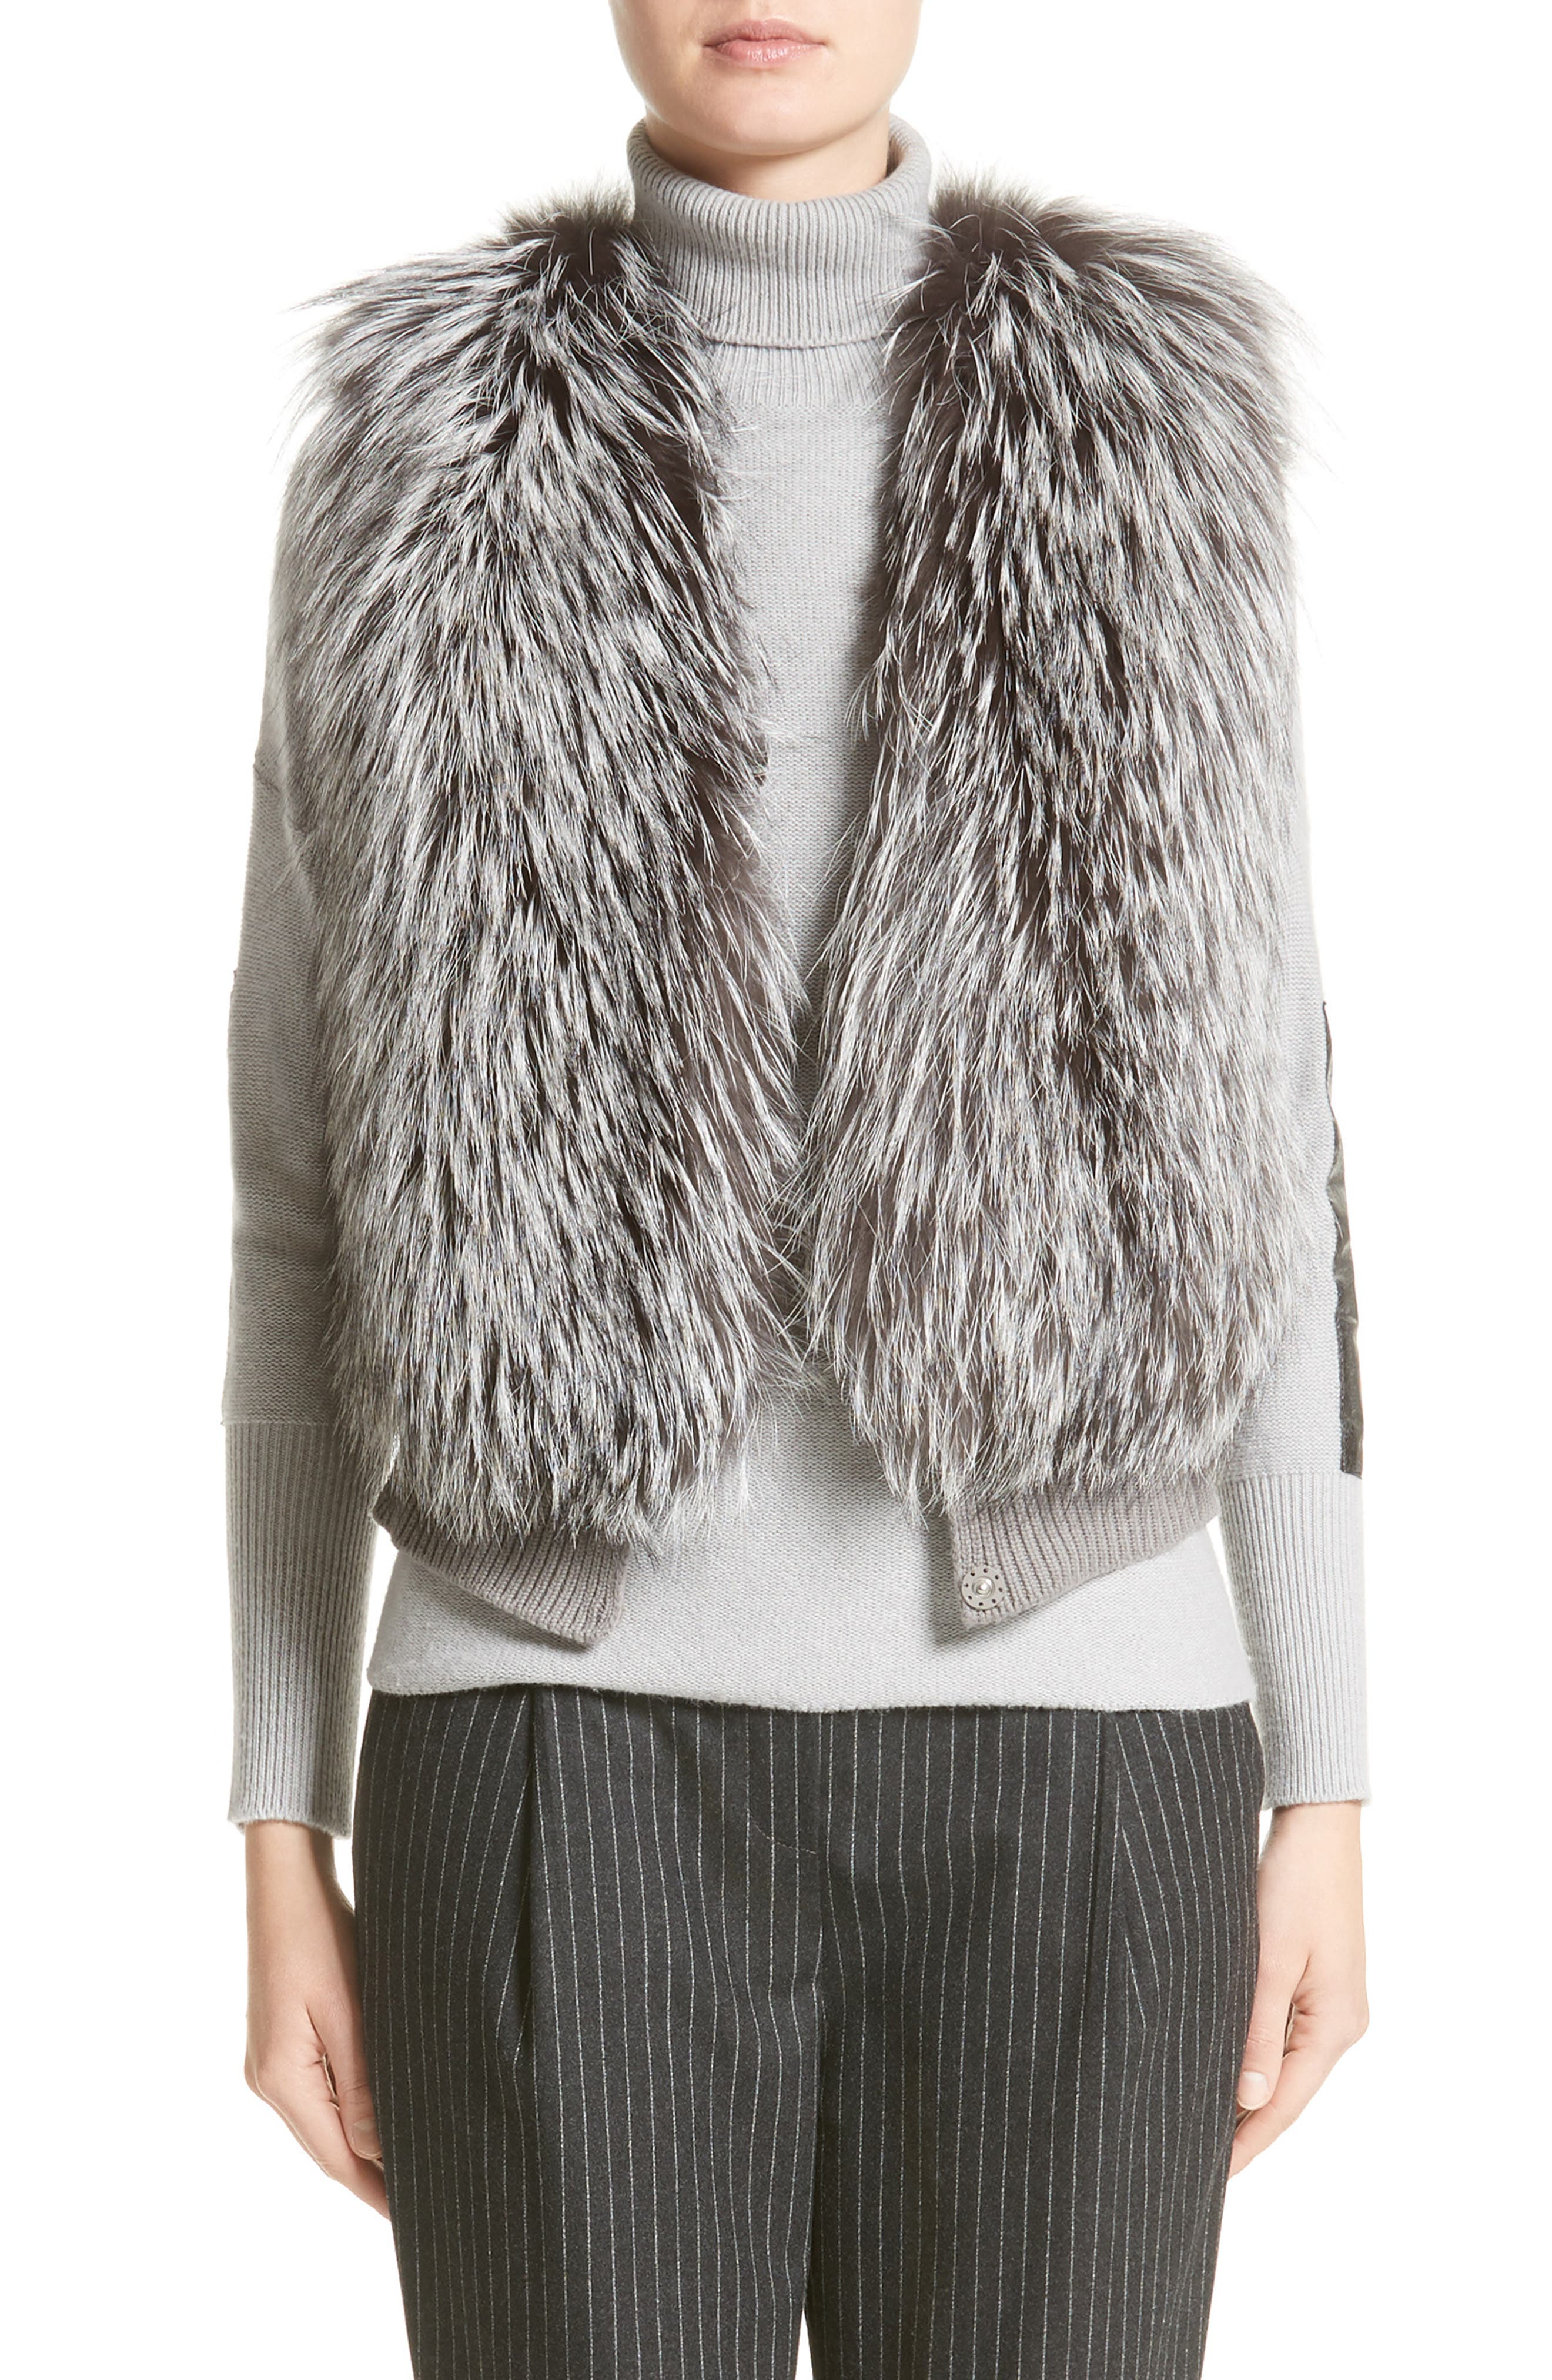 Fabiana Filippi Wool, Silk & Cashmere Knit Vest with Genuine Fox Fur Front